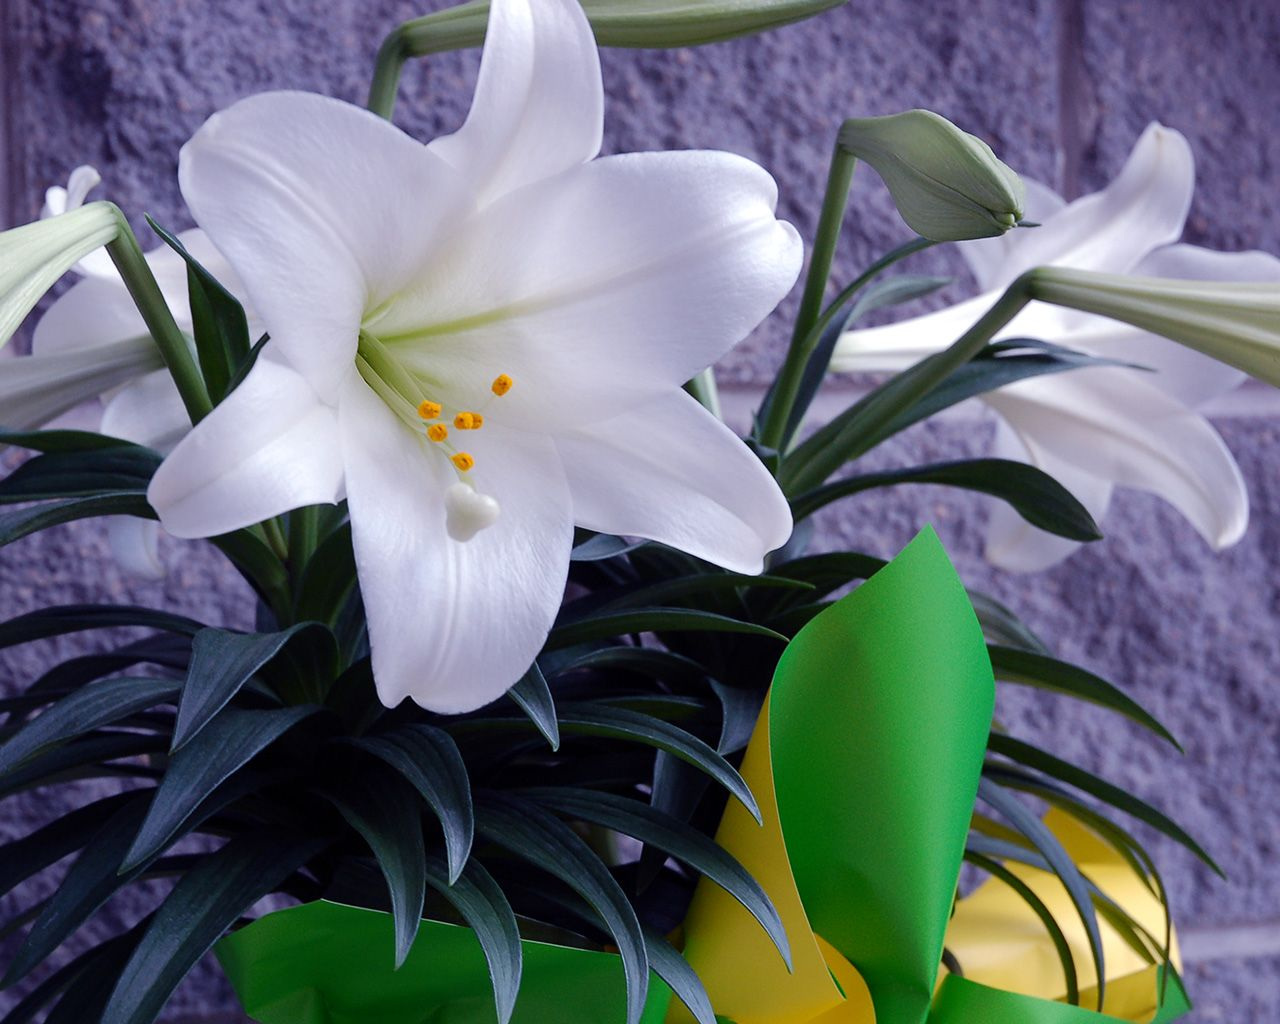 easter lily images - Bing Images